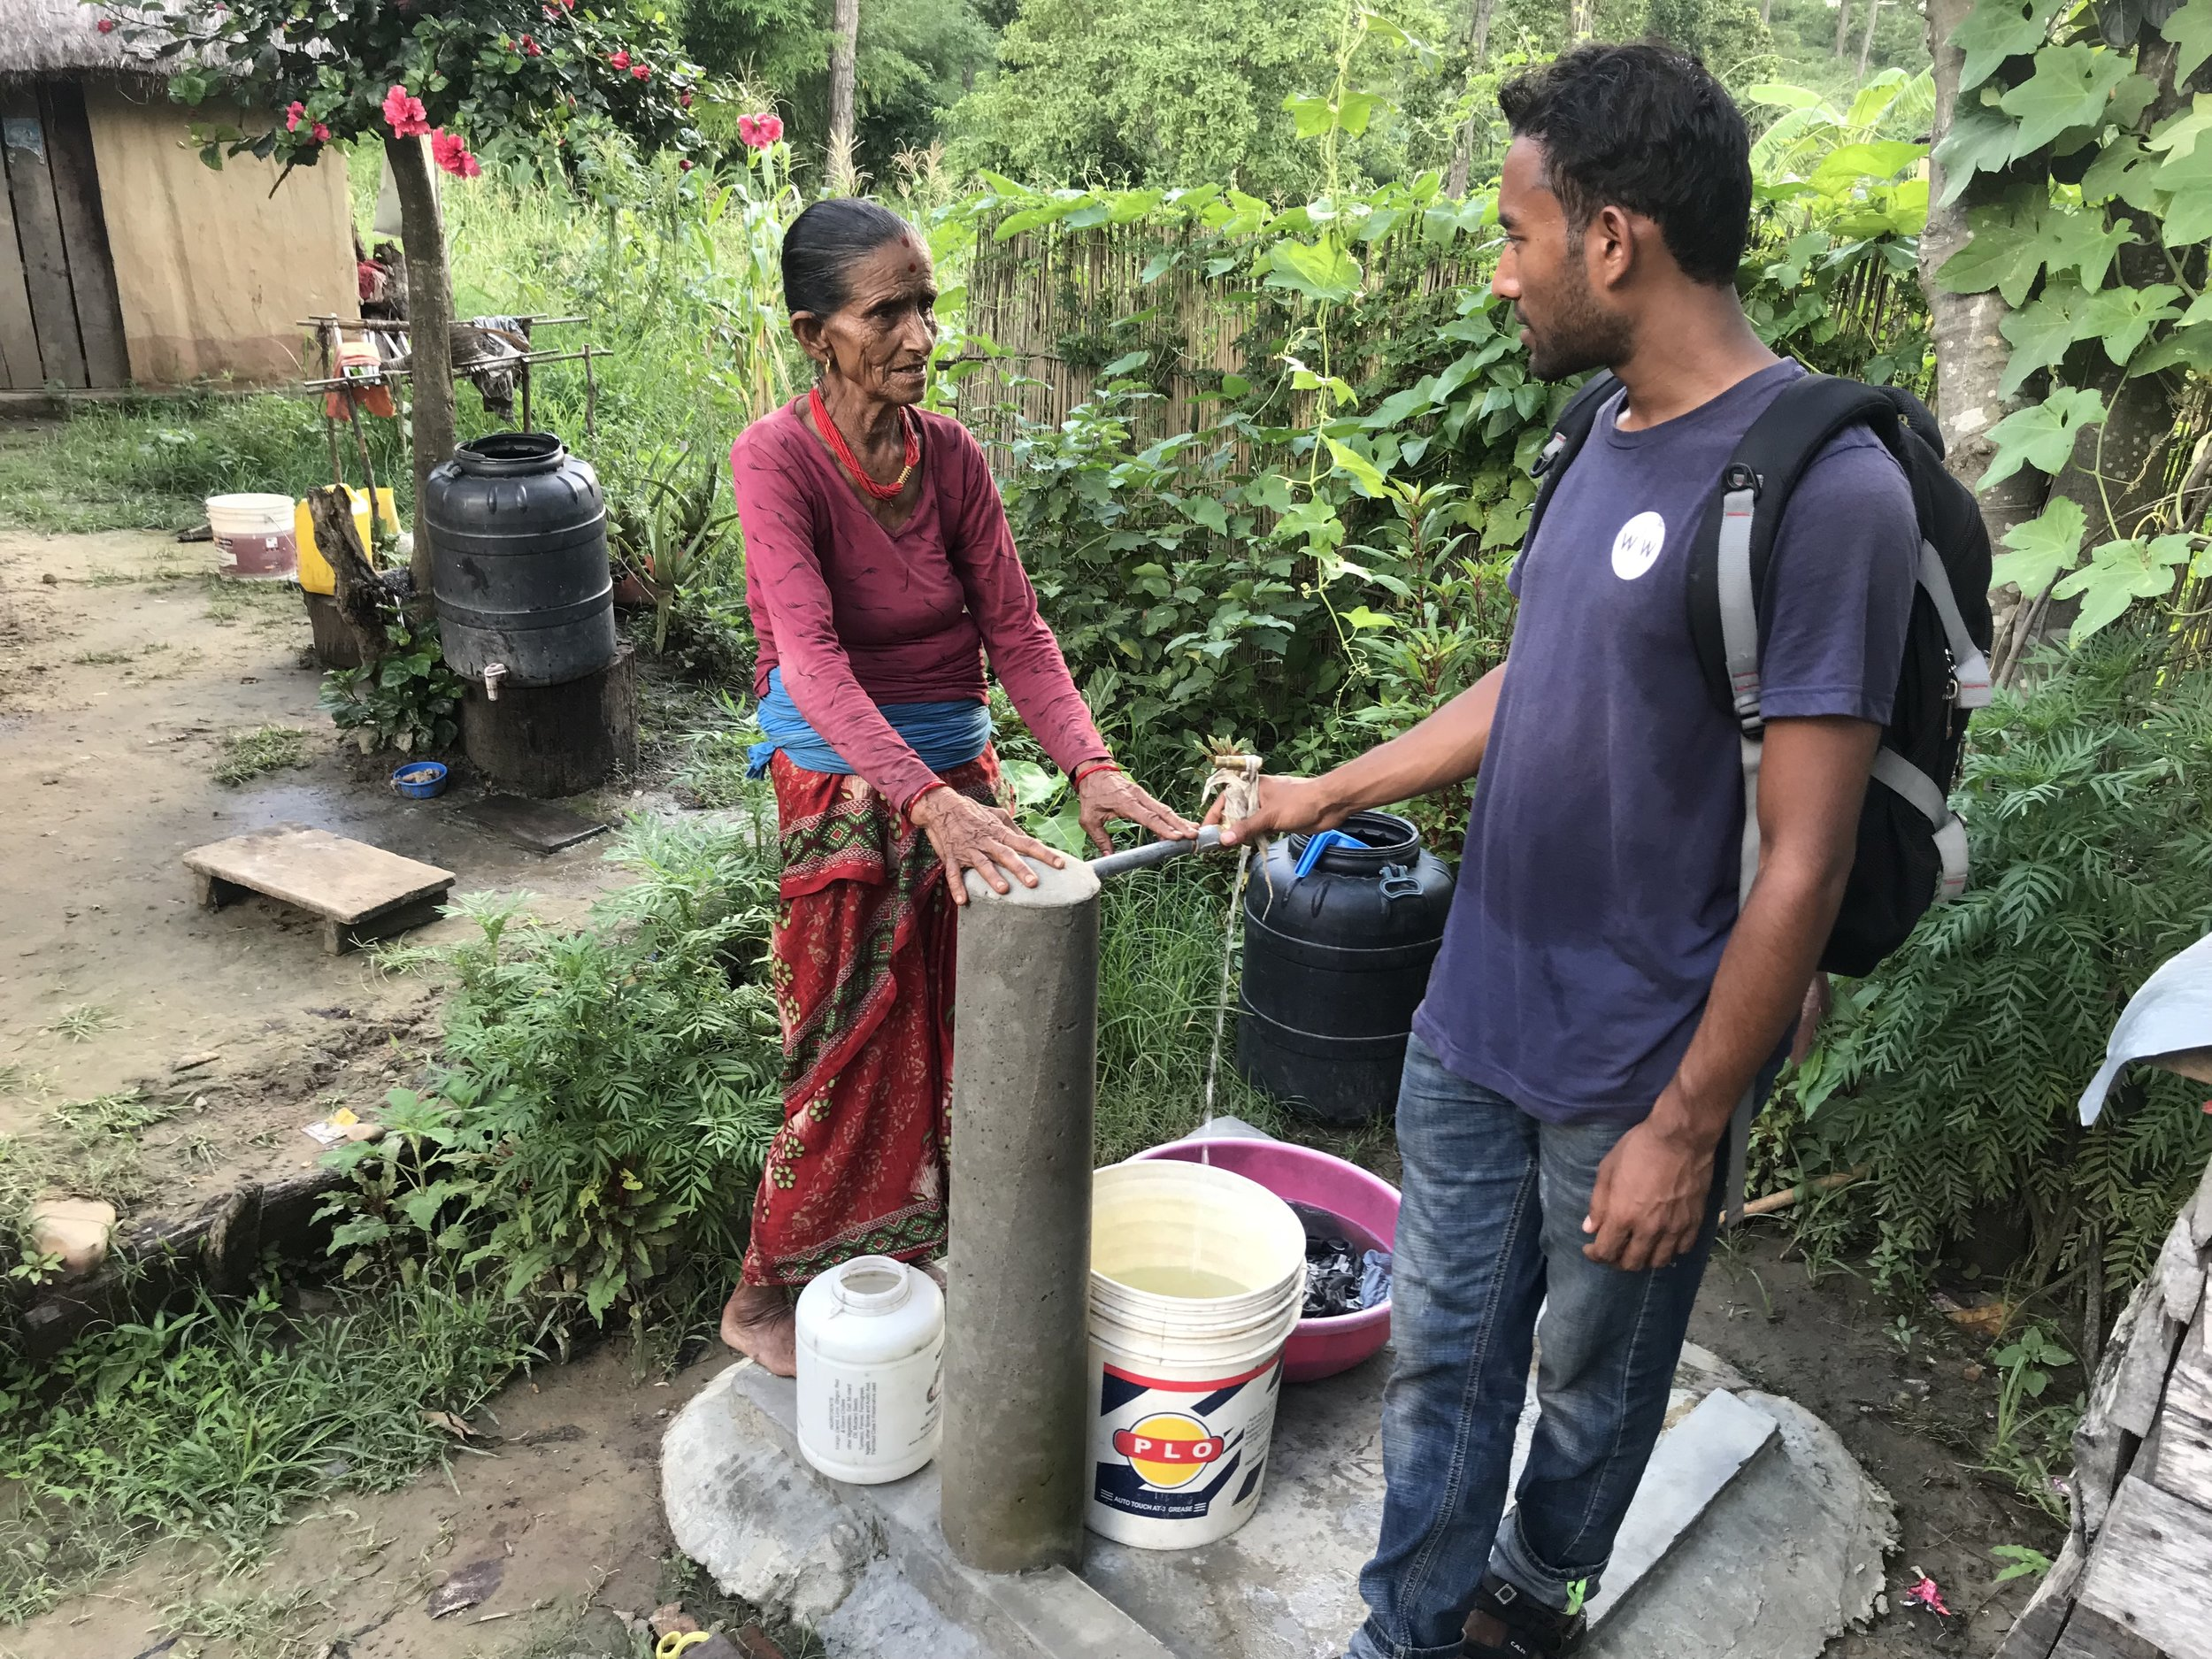 Nepal Field Coordinator Abhishek Basnet speaks with a woman about her community's new tapstand.